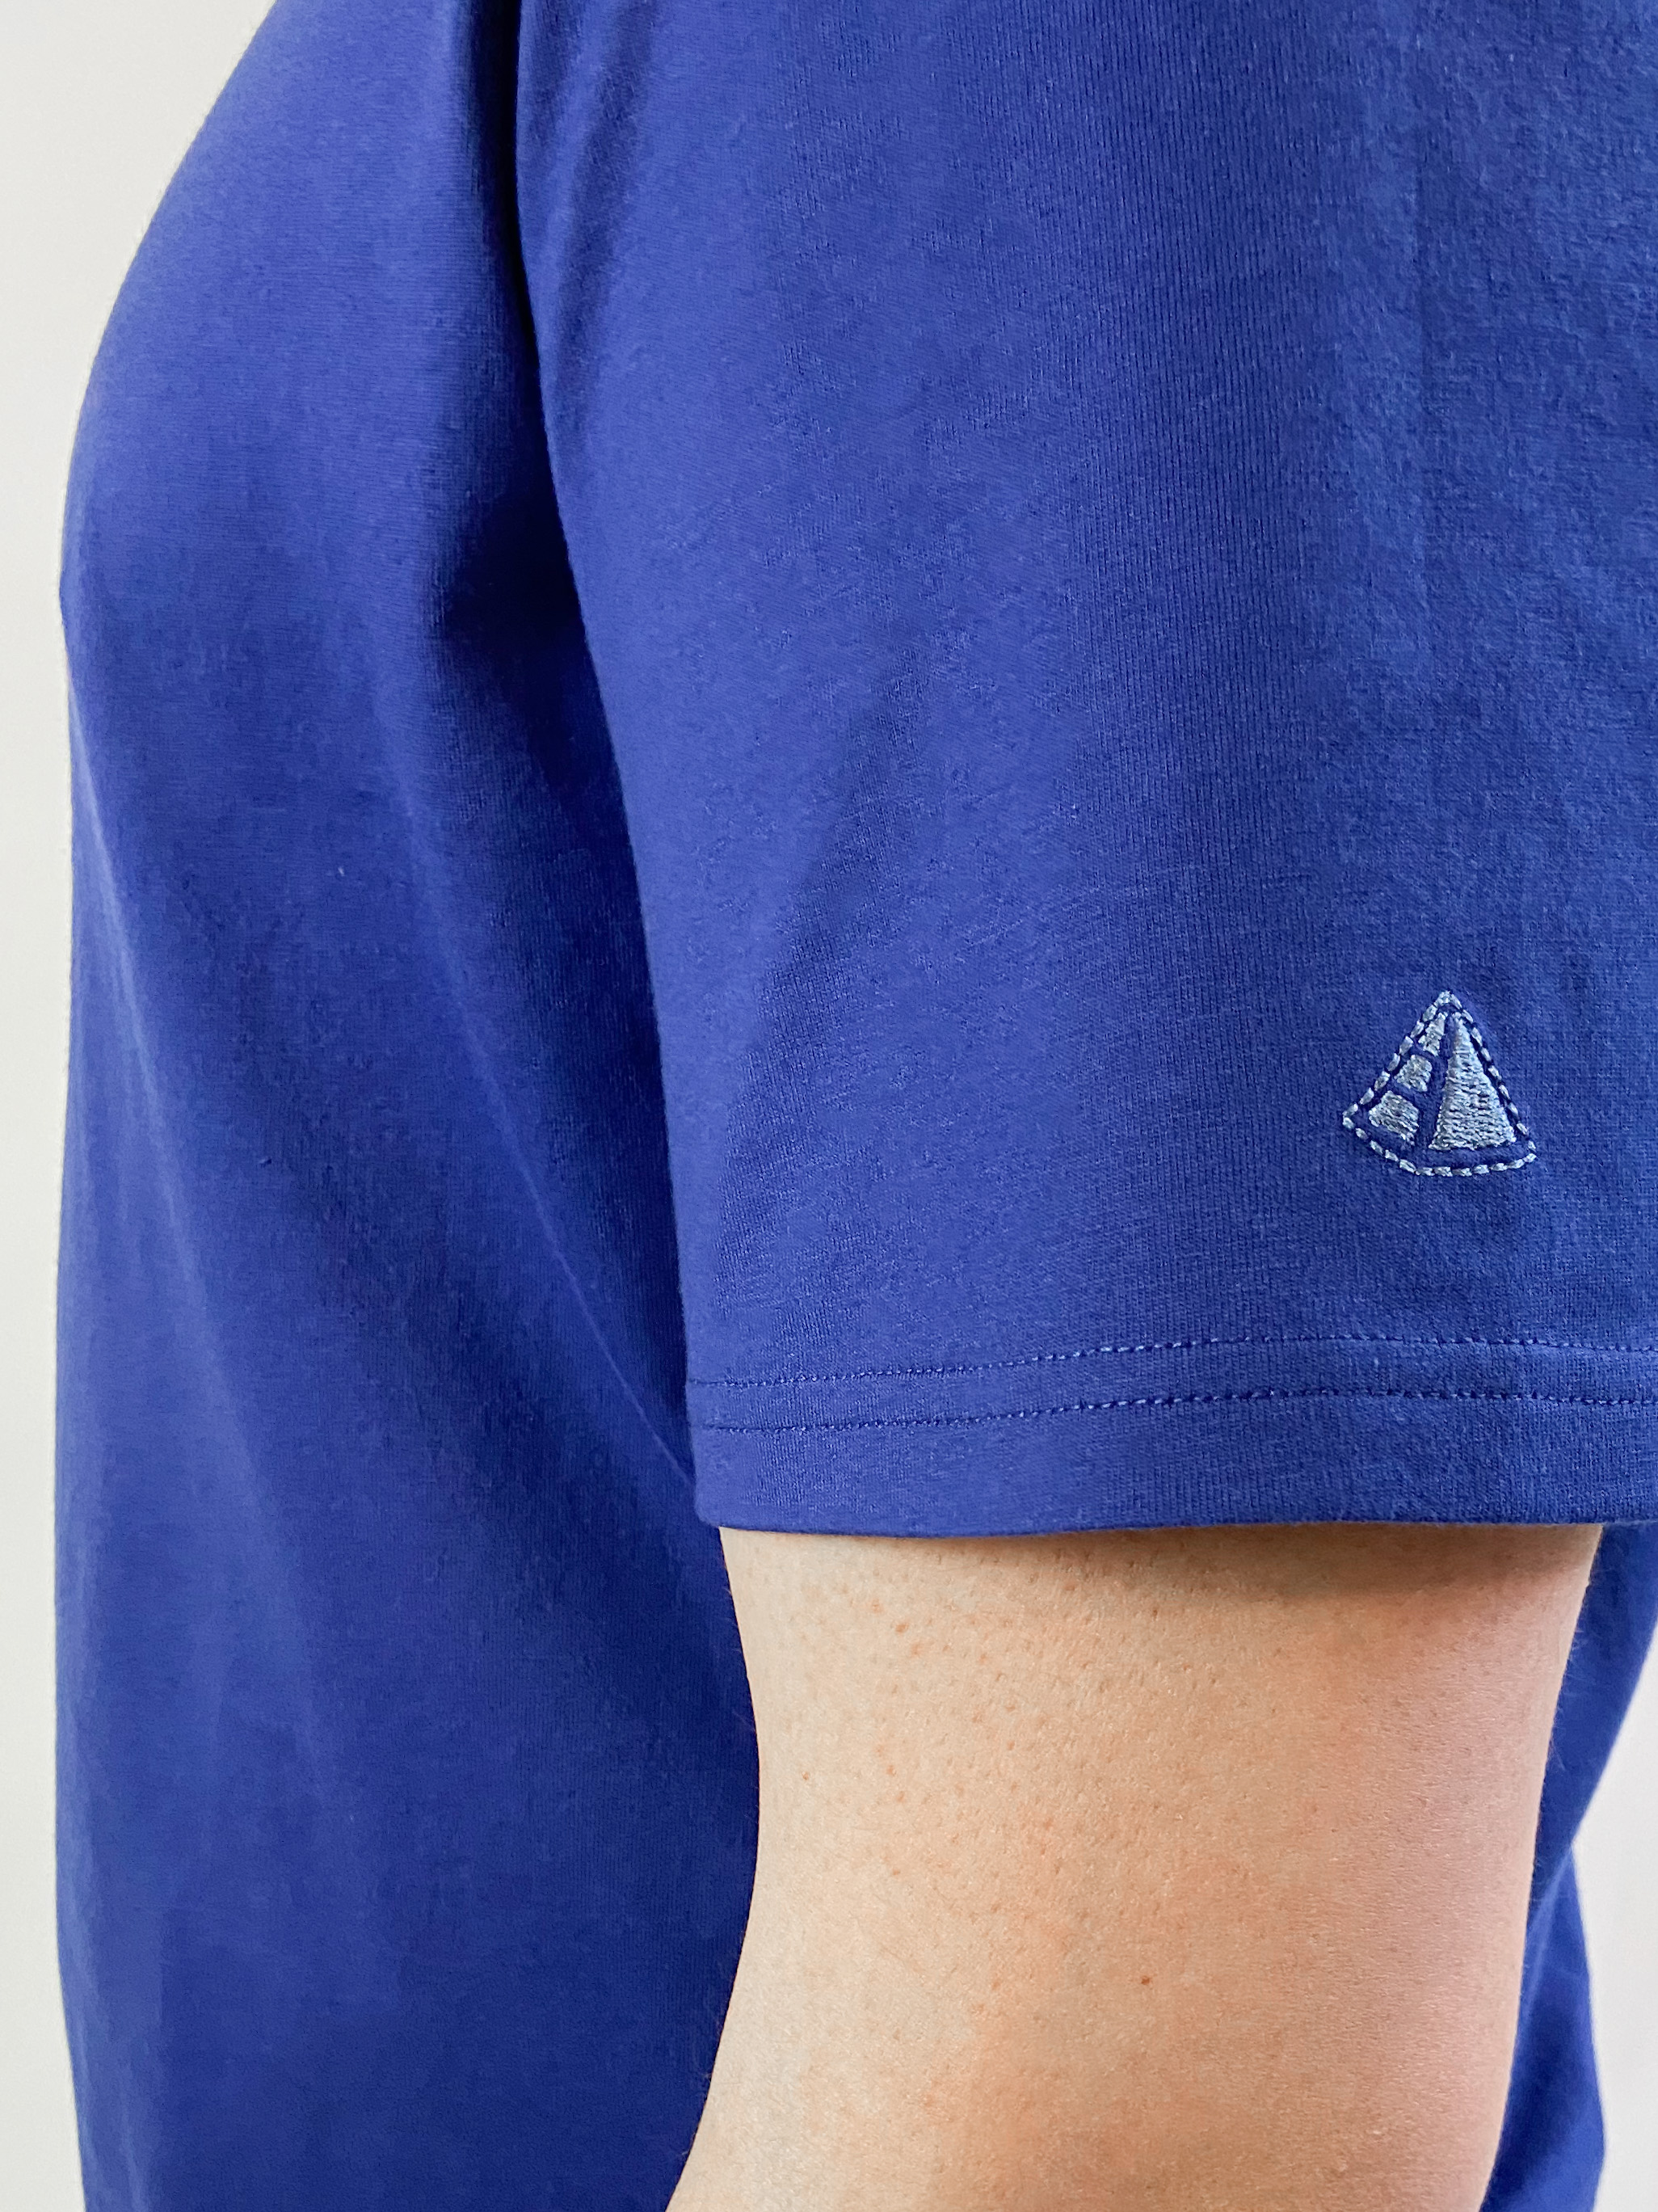 Embroidered Egyptian Cotton Tshirts logo on the sleeve of a T001 T-Shirtg